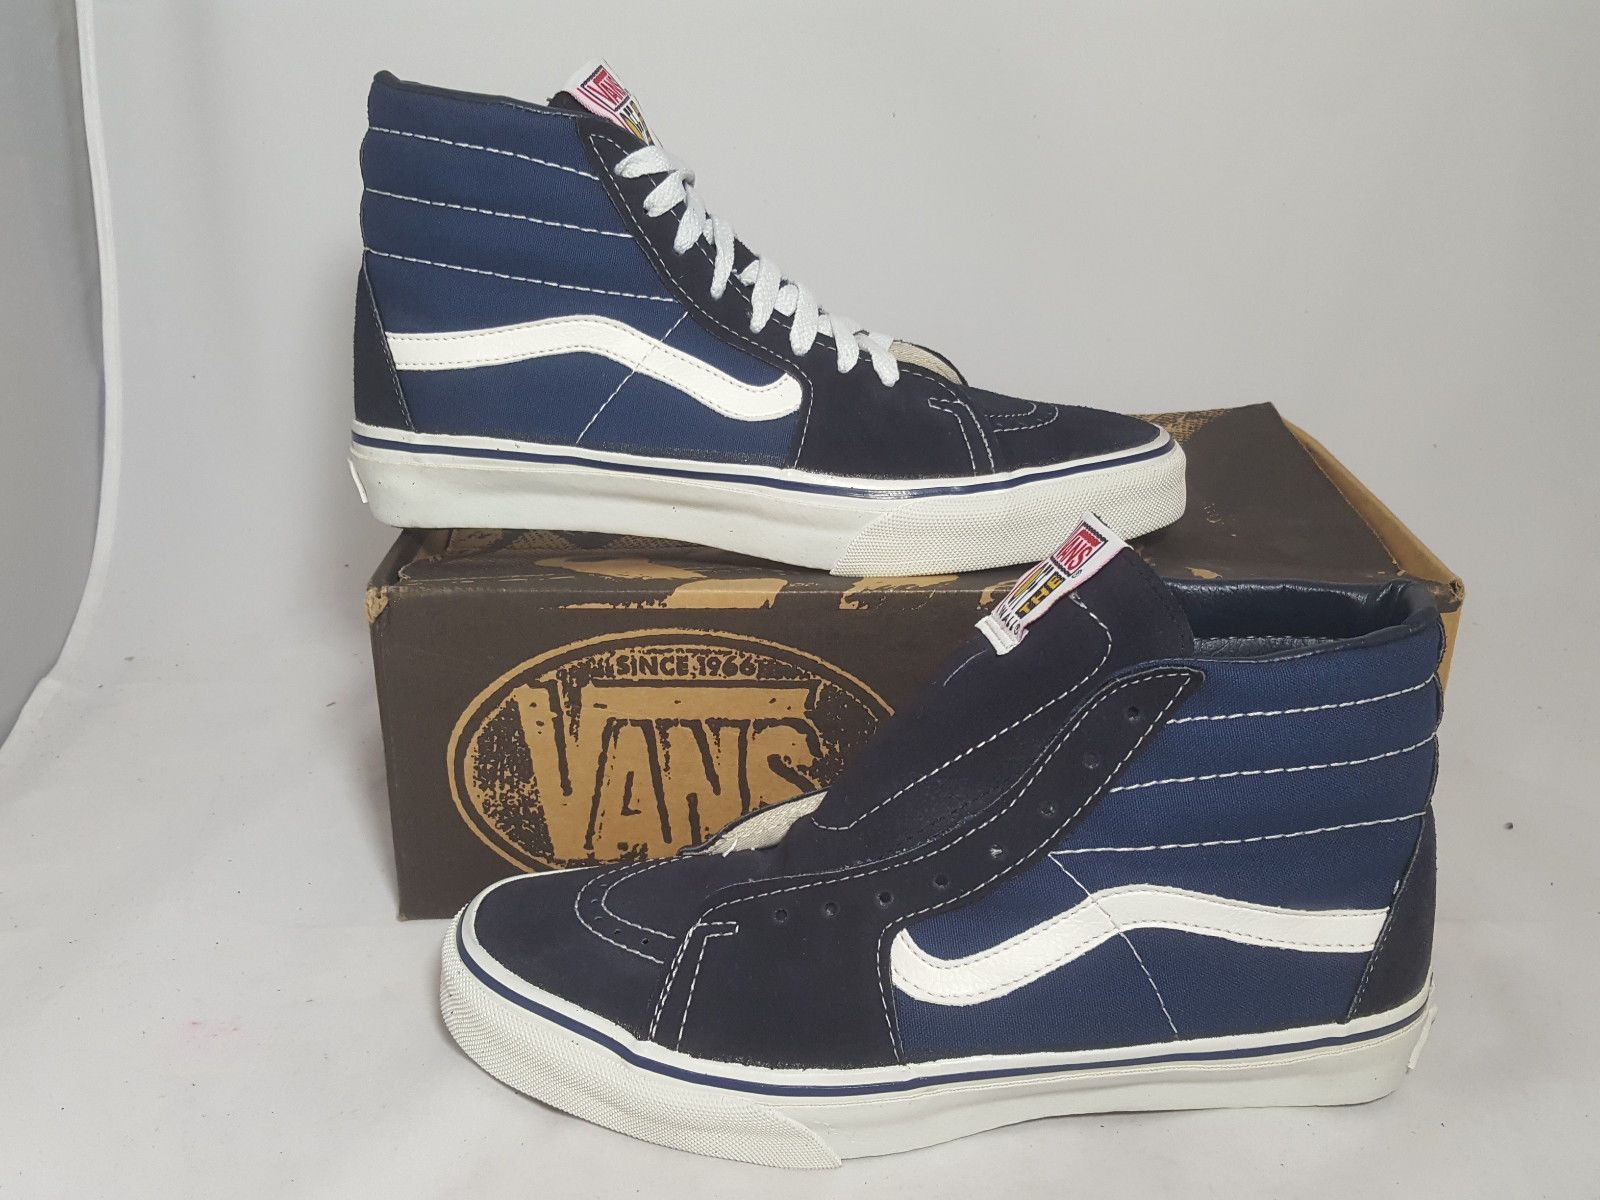 a3a4b453d90 Vintage Vans shoes SK8 HI NAVY made USA Men s Size 9 NOS Old Skool BMX skate